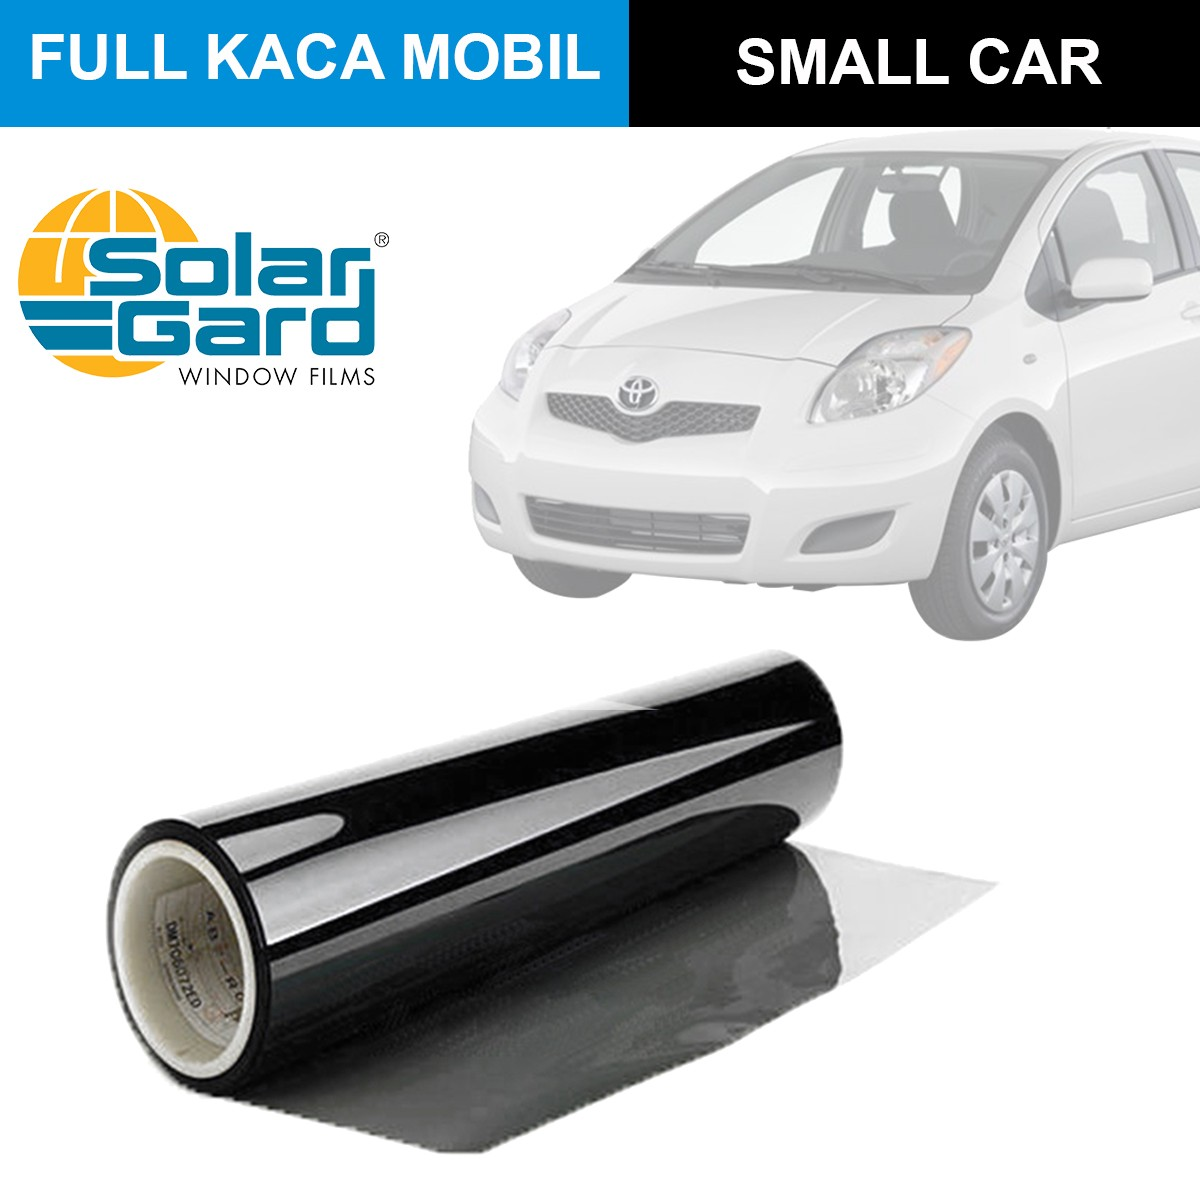 KACA FILM SOLAR GARD MOST FAVORITE - (SMALL CAR) FULL KACA